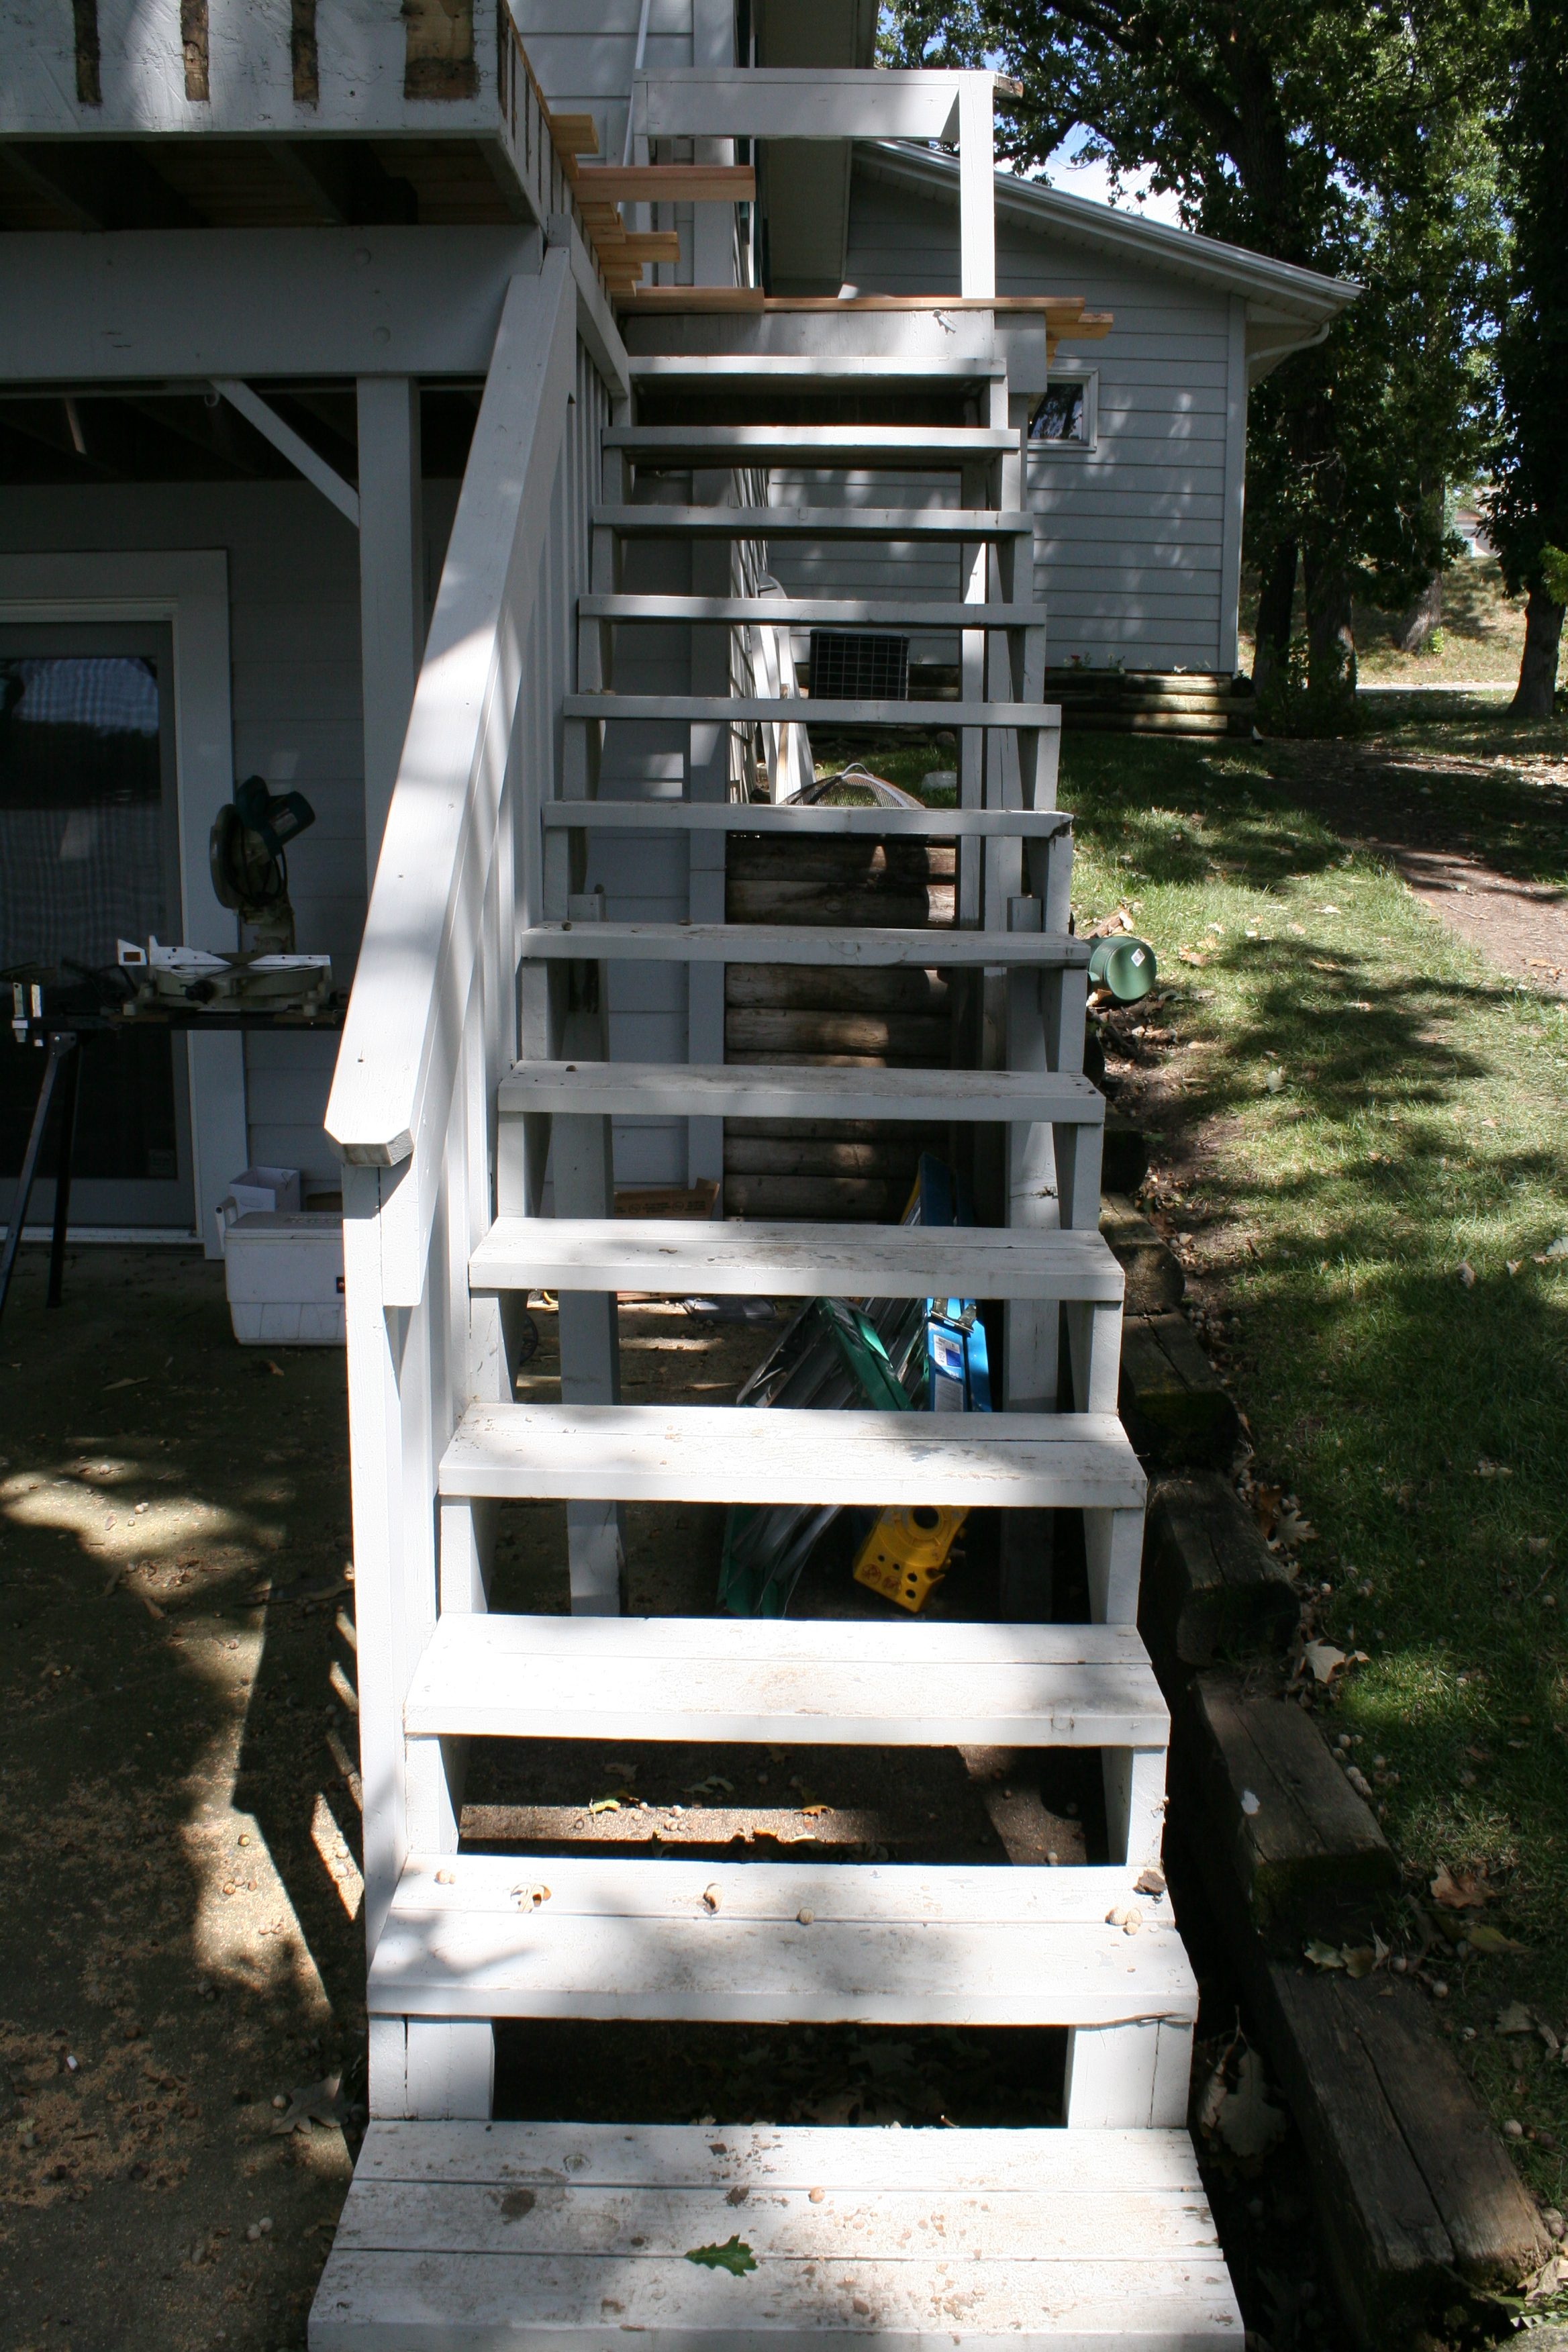 Stairs will be replaced Friday with Cedar and will be wider.